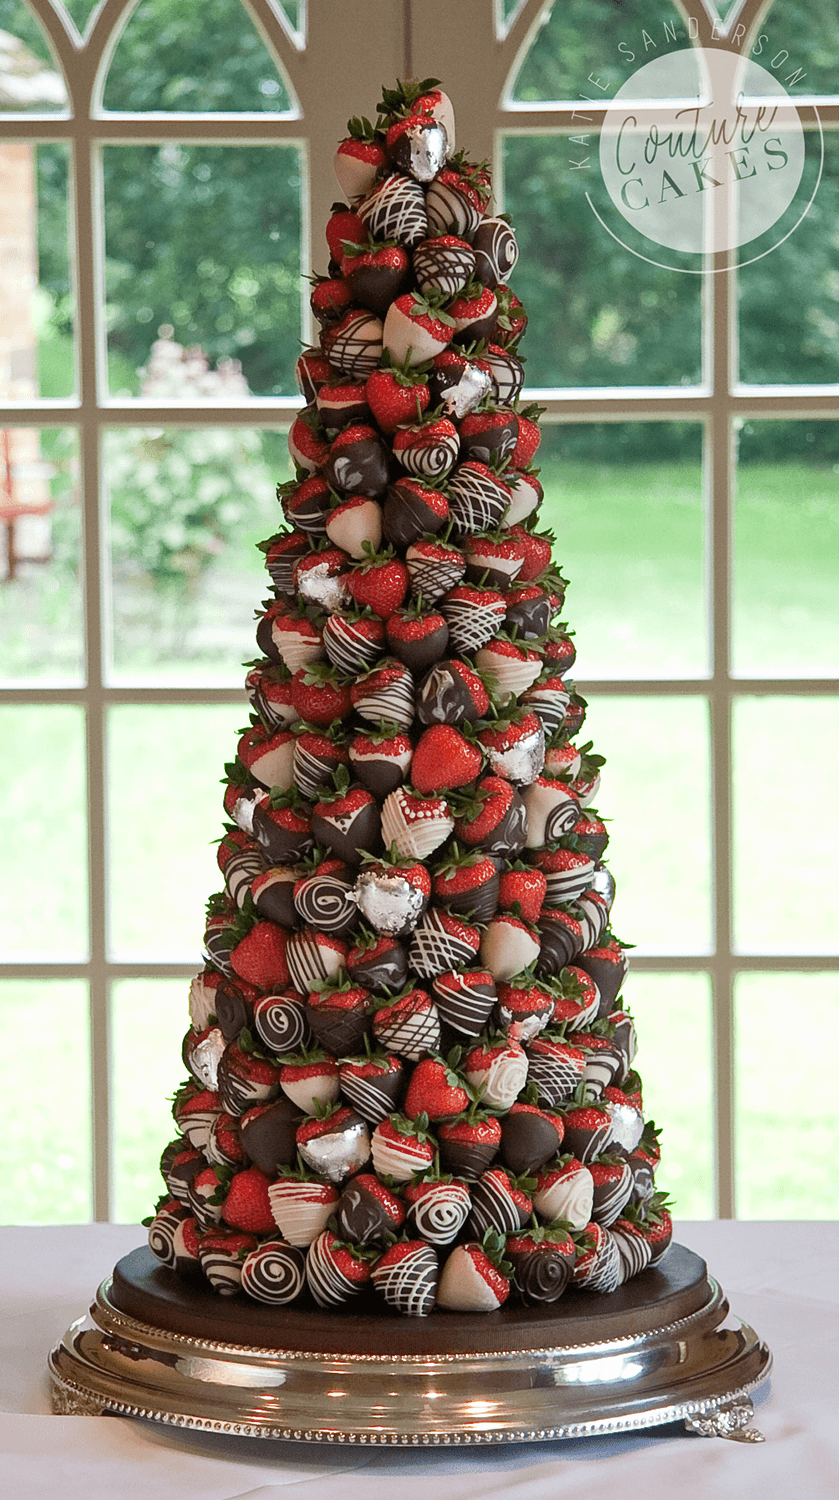 Provides 200 dipped strawberries, Price £395